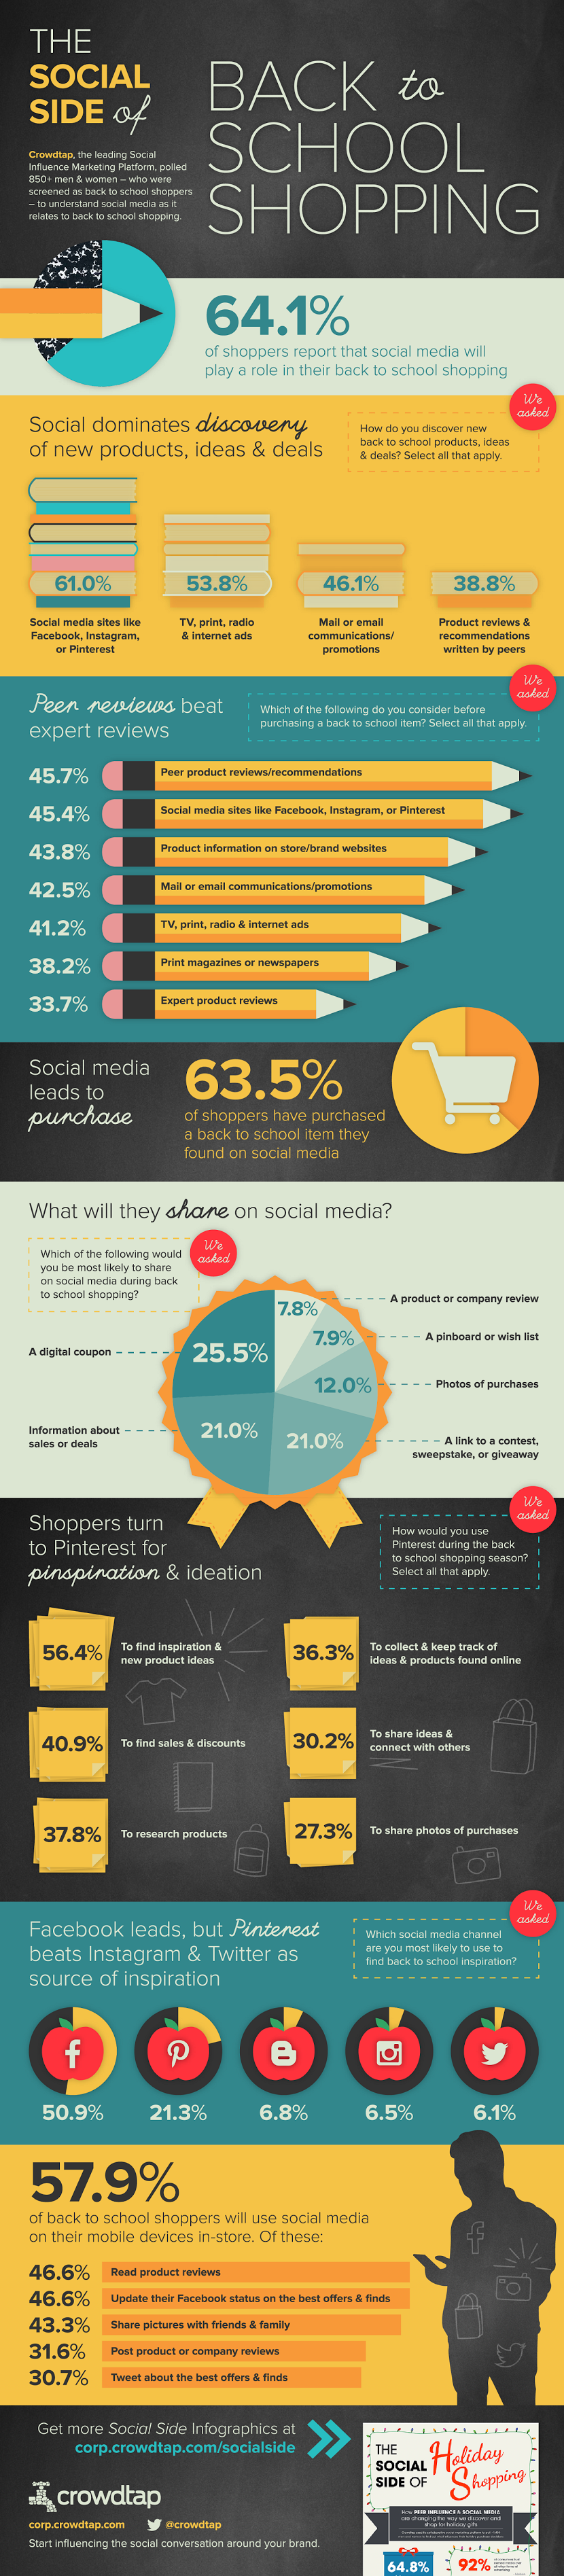 Back to School Shopping Infographic